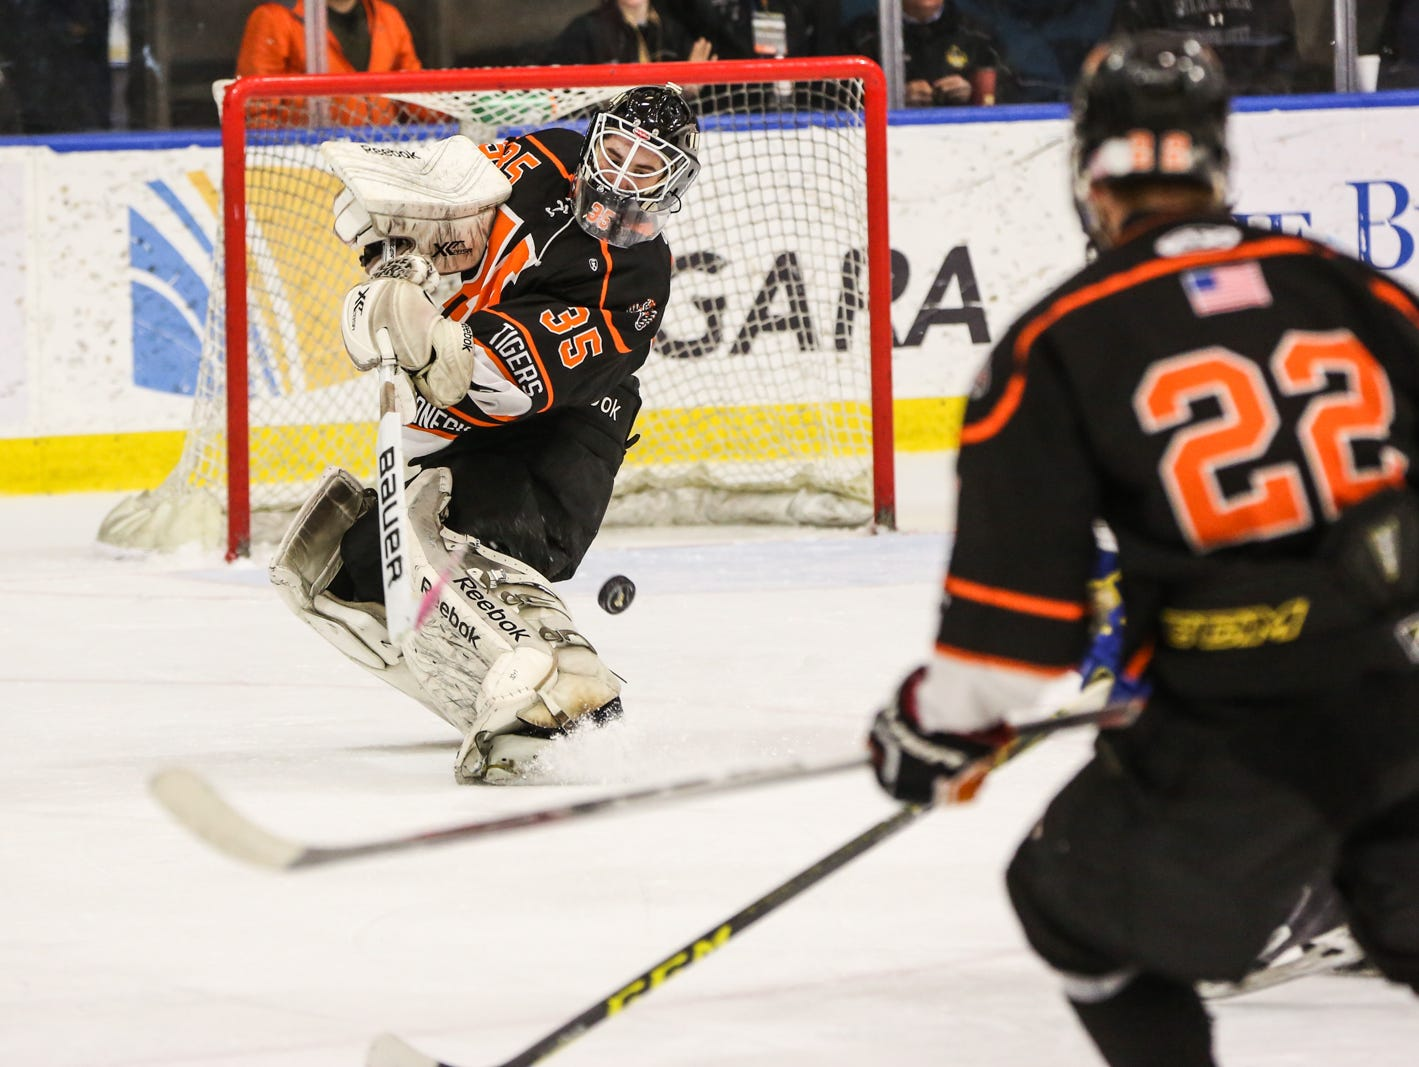 Mamaroneck's Tommy Spero (35) clears the puck in the third period. Mamaroneck defeated West Genesee 1-0 and won the NYSPHSAA Division 1 HarborCenter in Buffalo, NY.